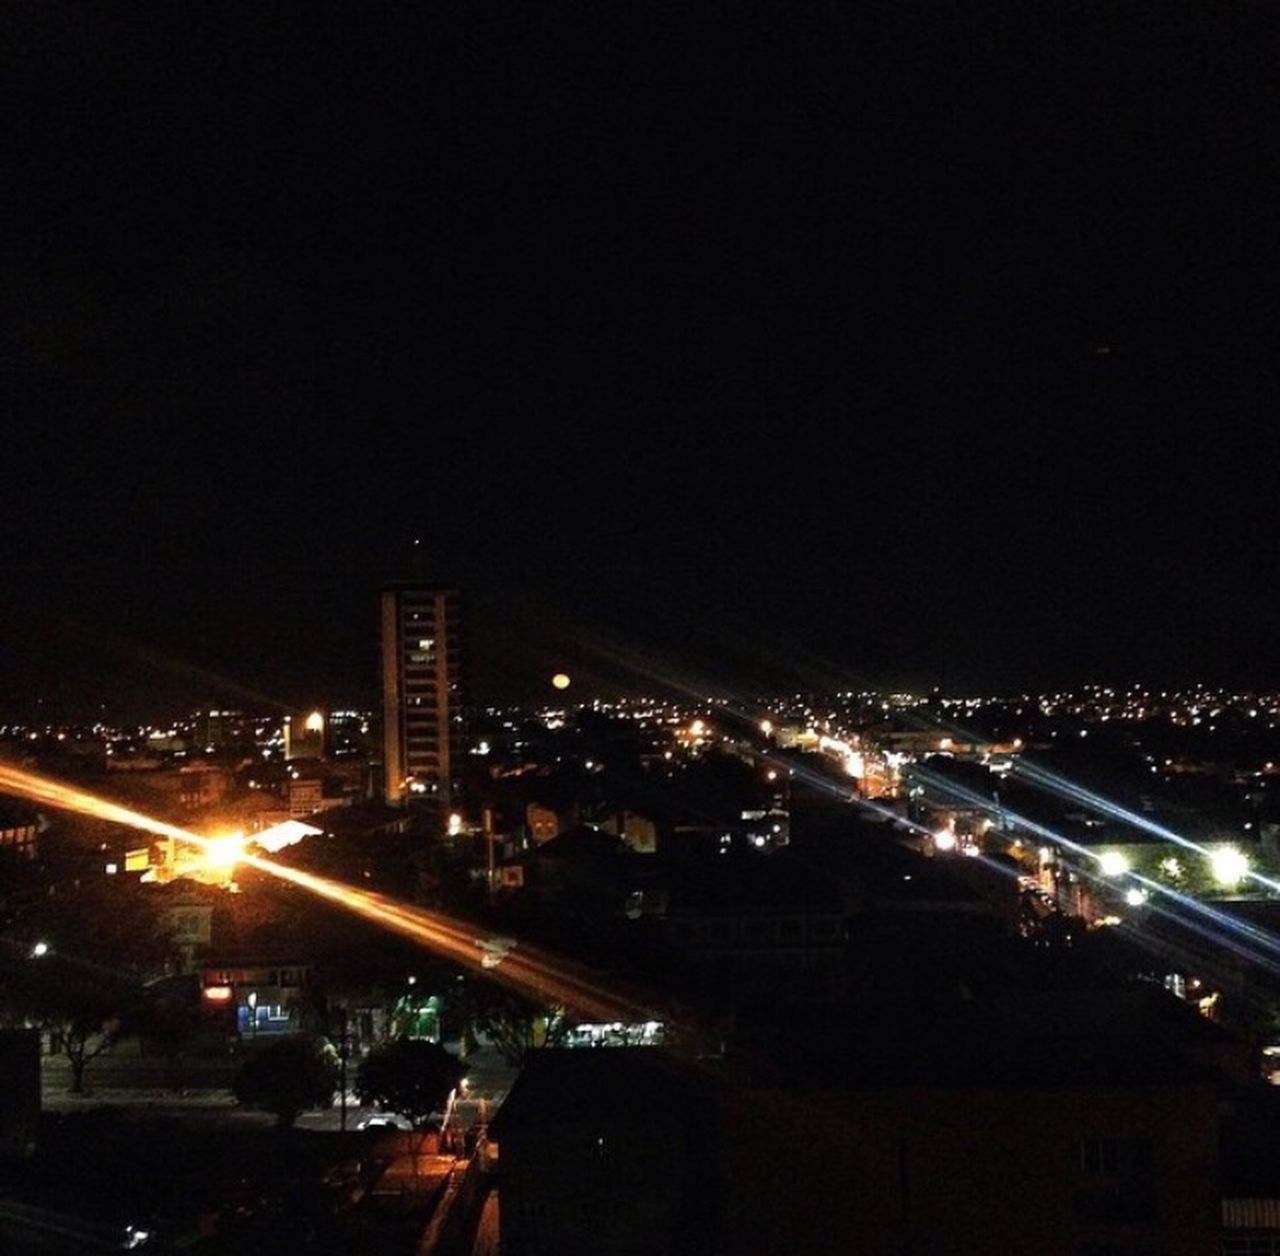 illuminated, night, city, architecture, building exterior, built structure, transportation, outdoors, cityscape, no people, clear sky, sky